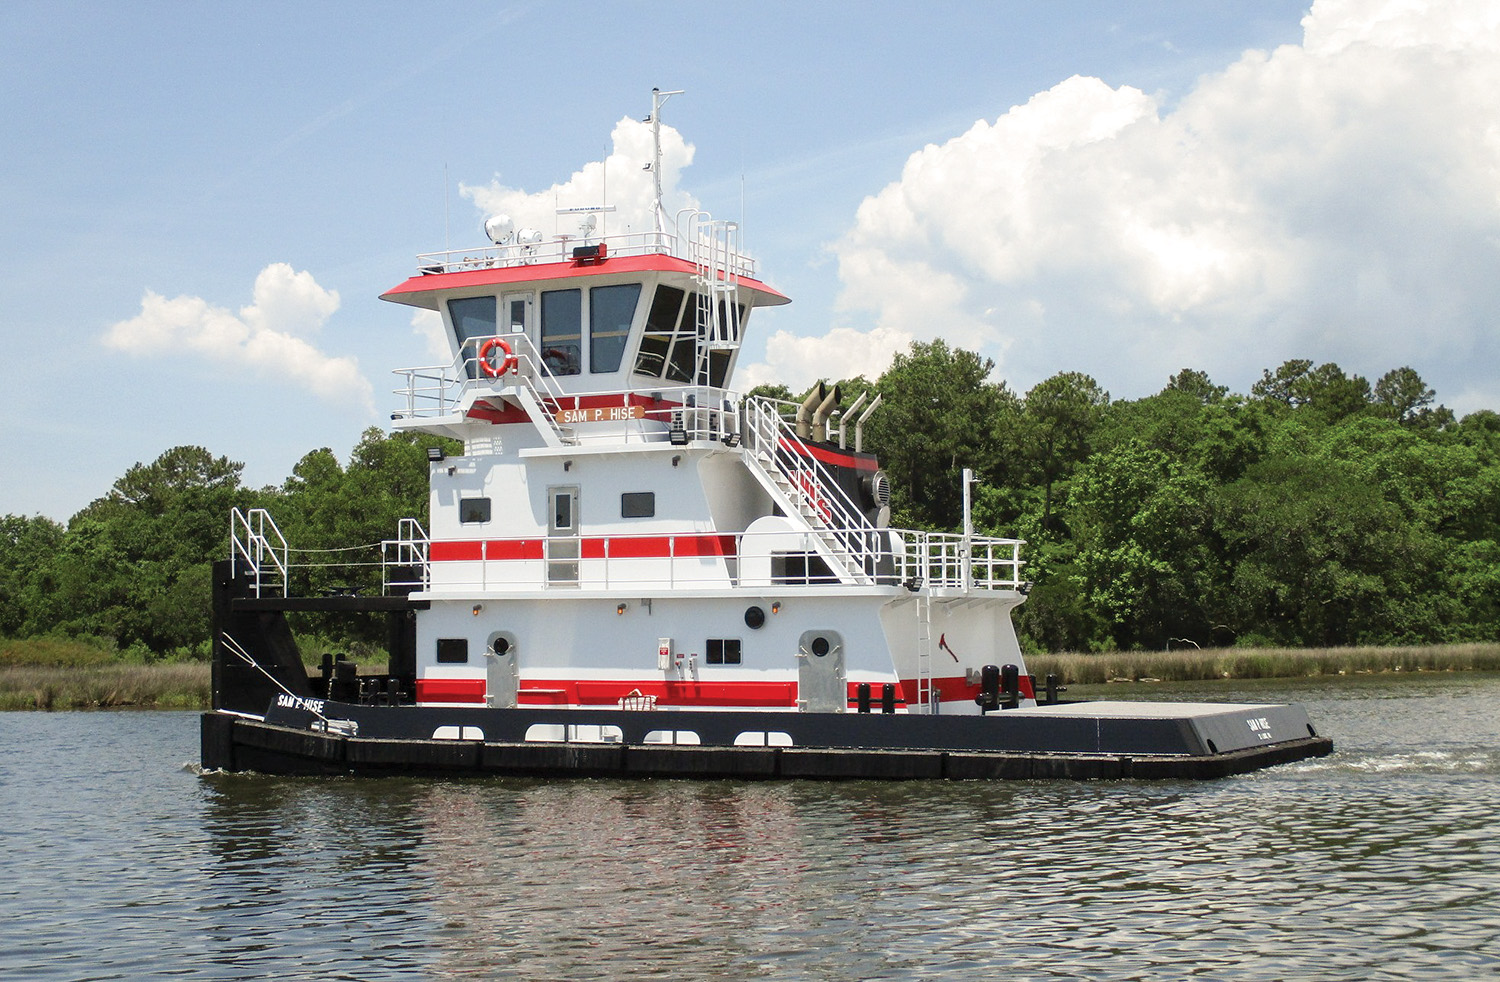 The 1,606 hp. Sam P. Hise is the third of four towboats Master Marine is building for Waterfront Services Company.